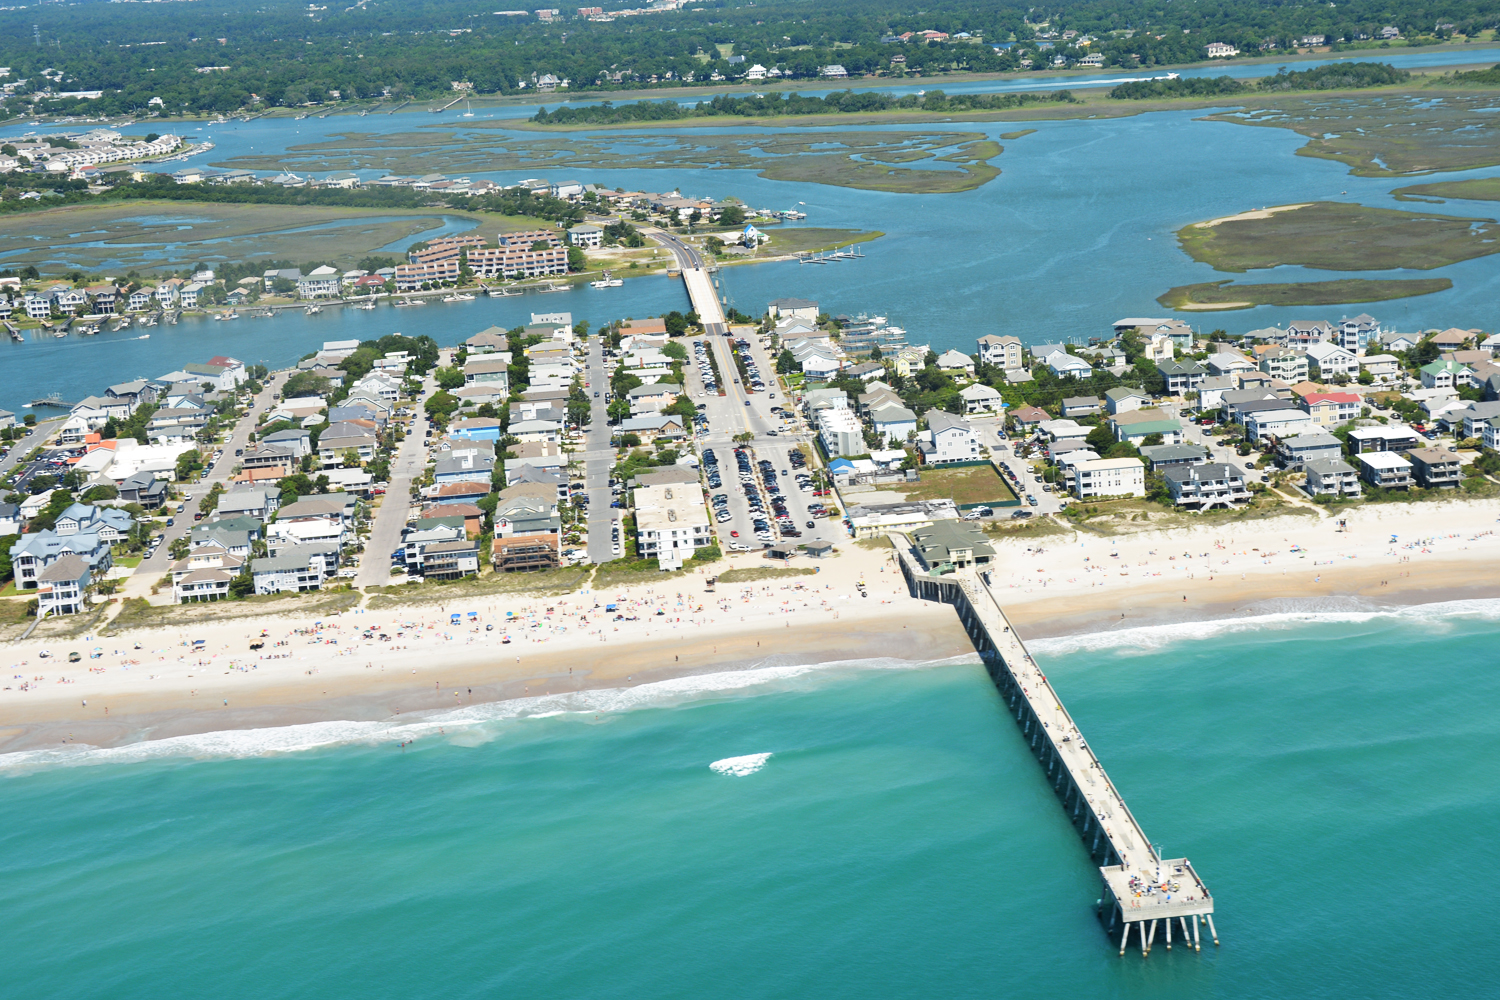 Wrightsville Beach North Carolina 2013 Aerial Photo